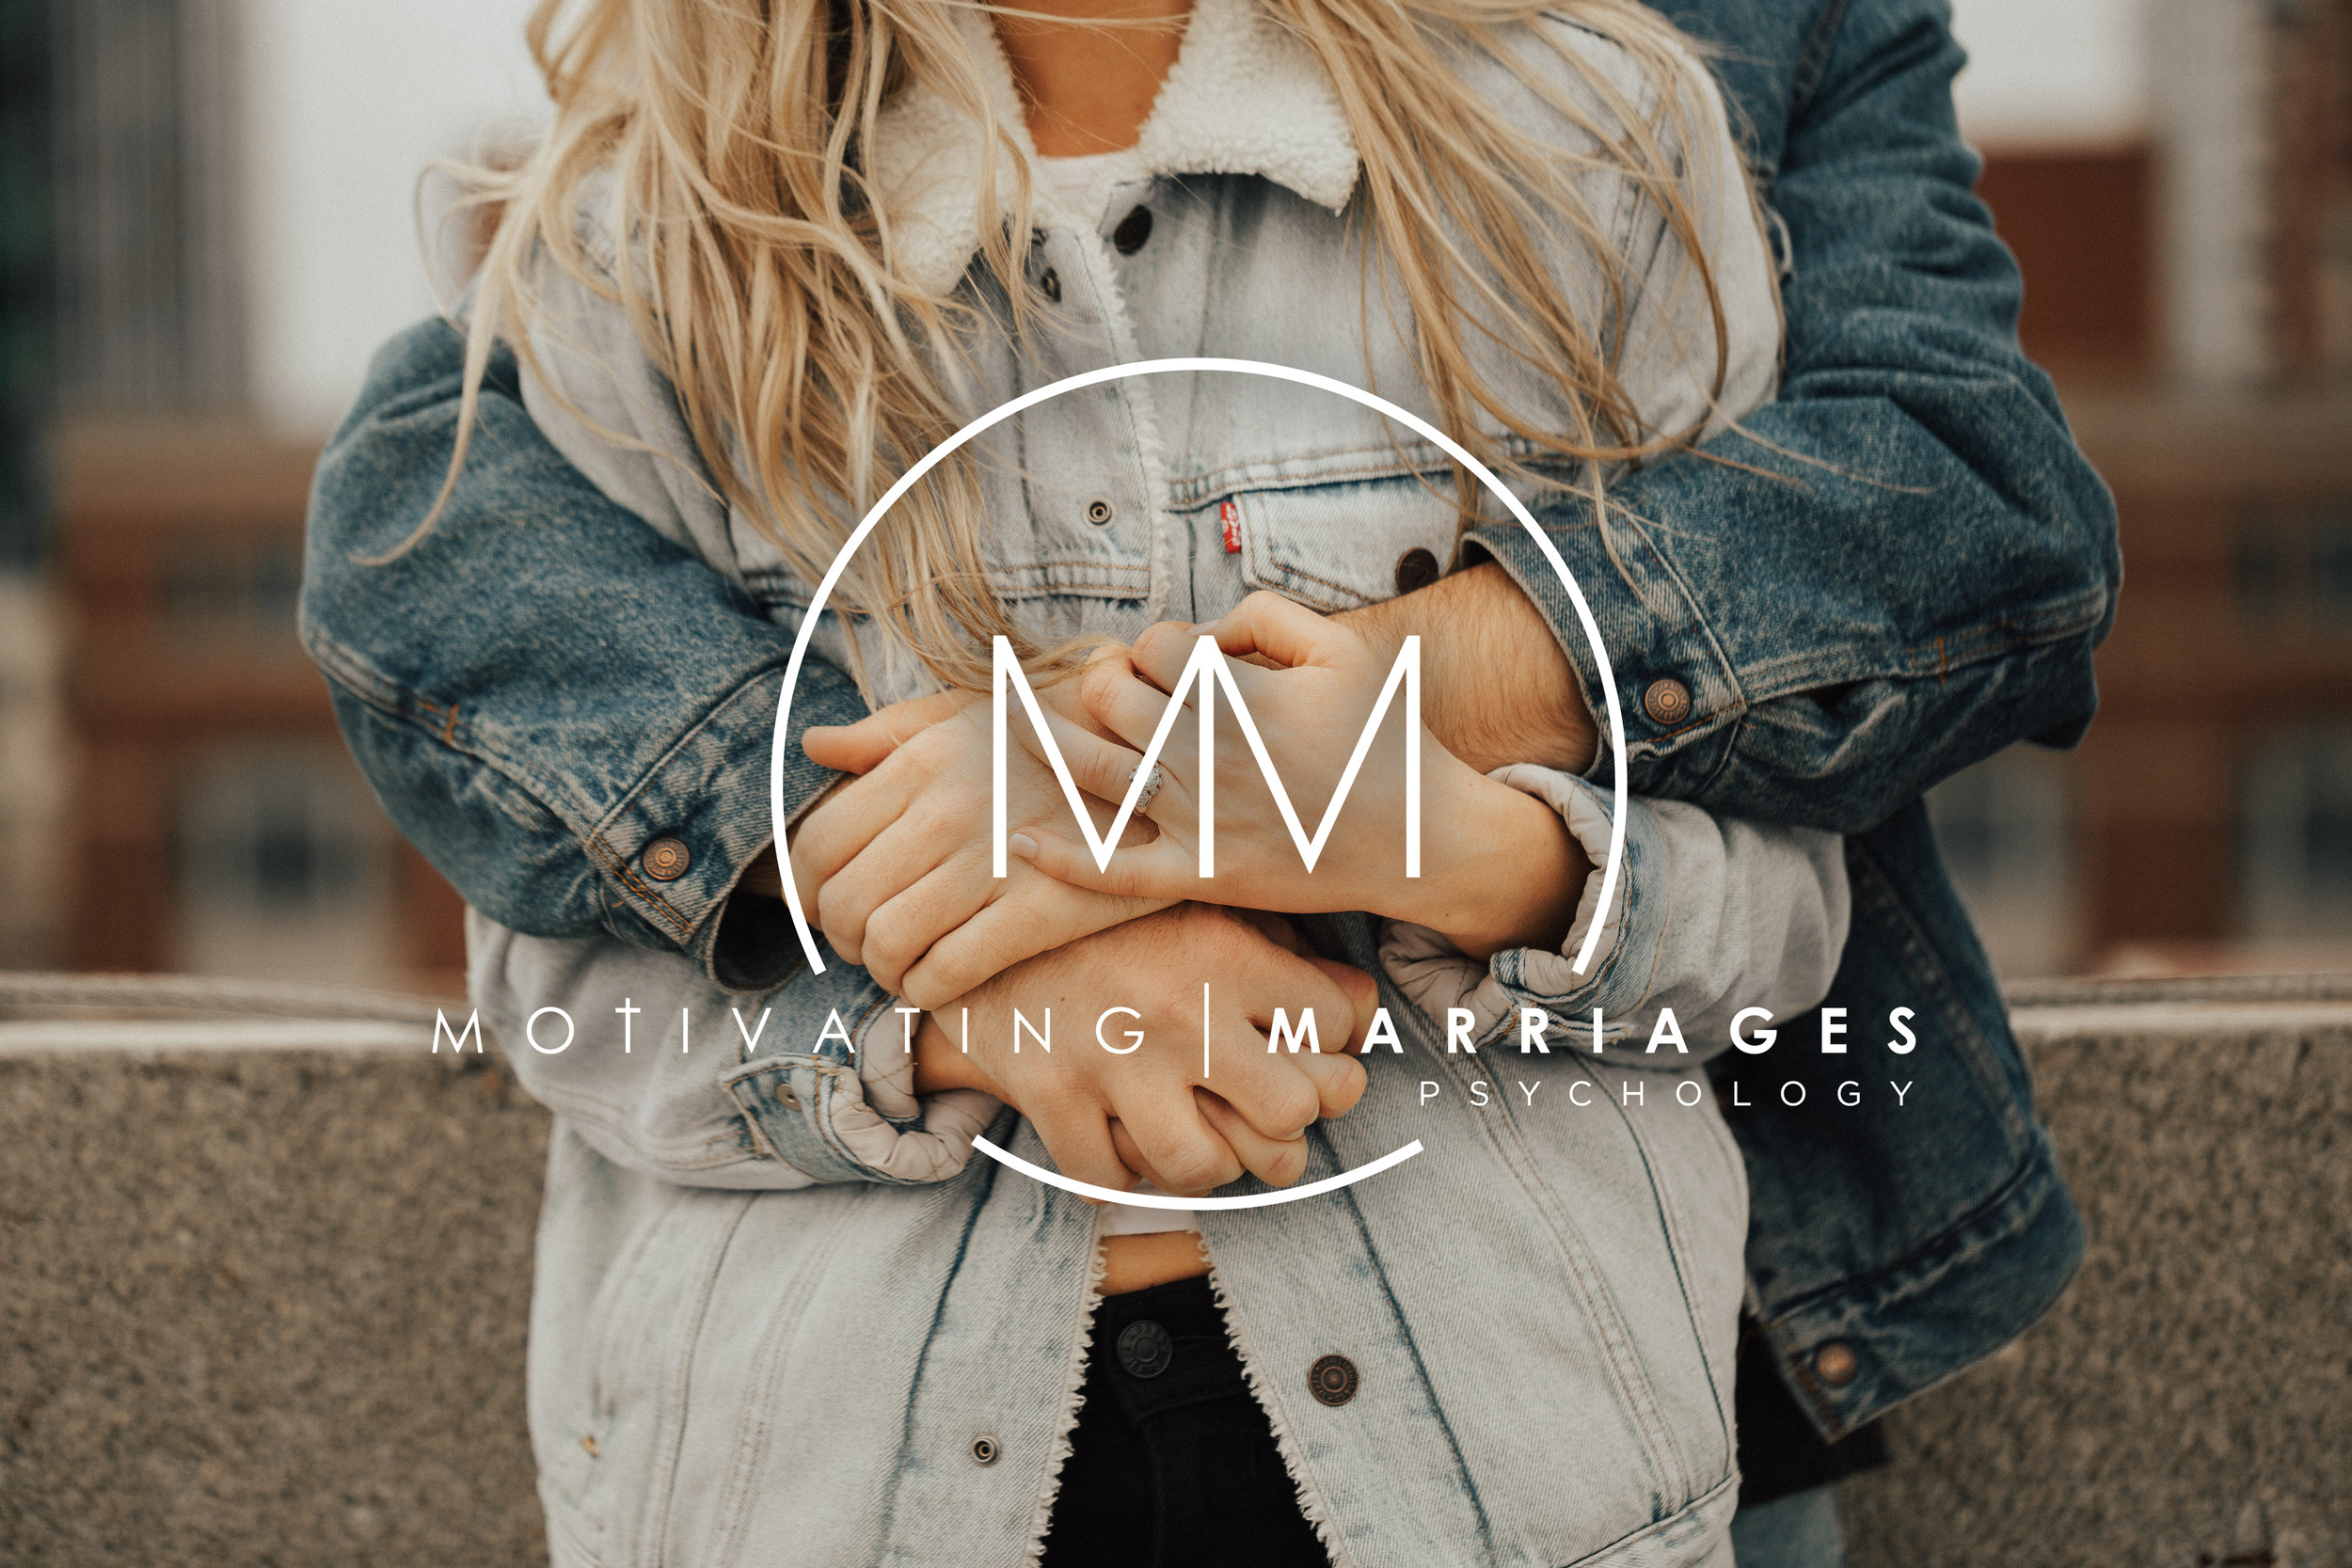 Motivating marriages psychology logo couple in denim hugging with white logo and lettering